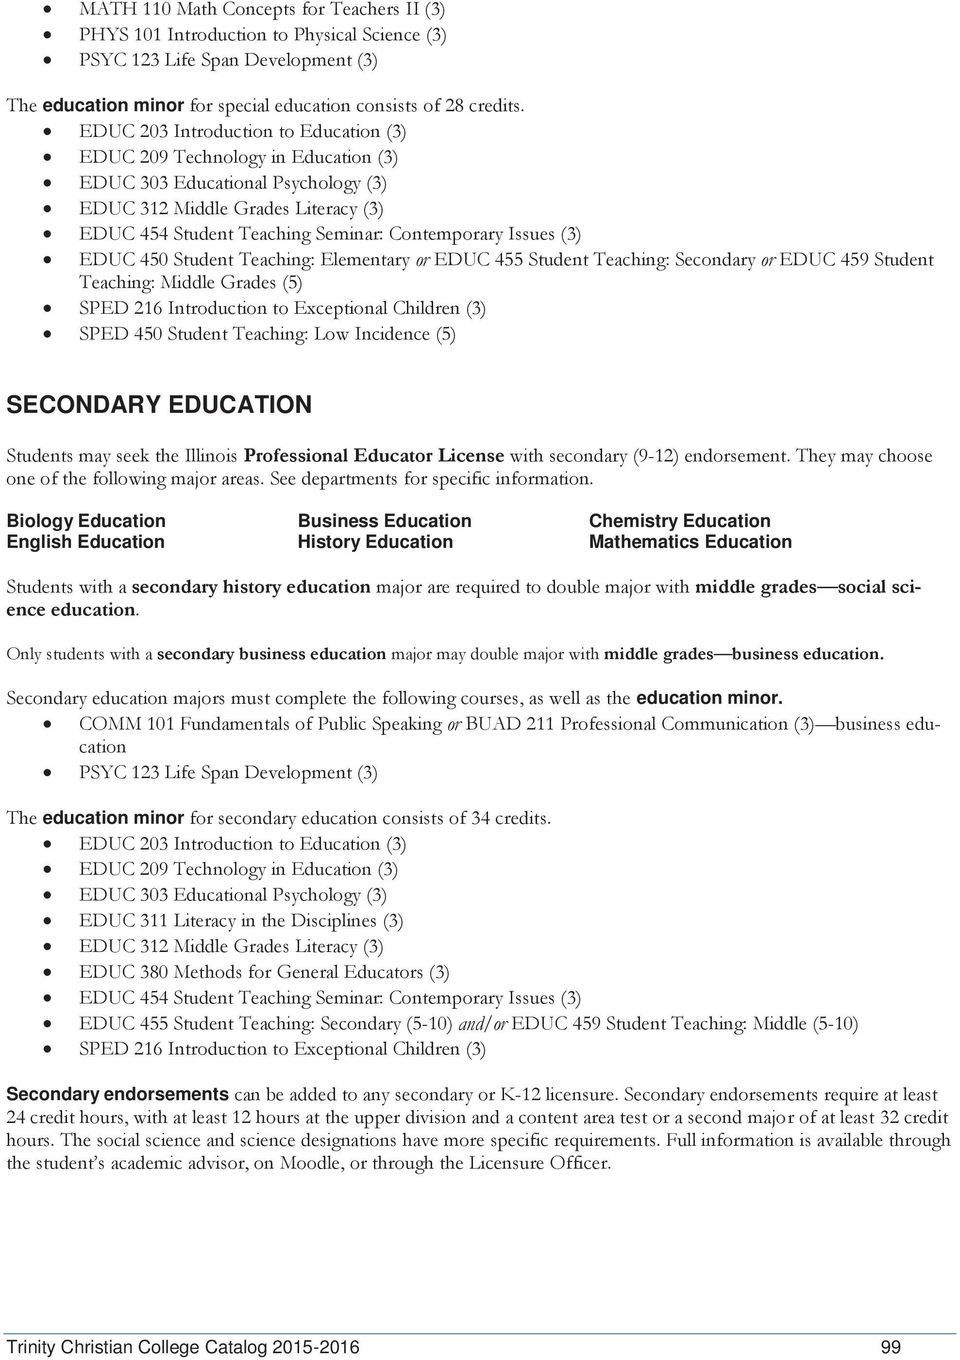 may seek the Illinois Professional Educator License with secondary (9-12) endorsement. They may choose one of the following major areas. See departments for specific information.